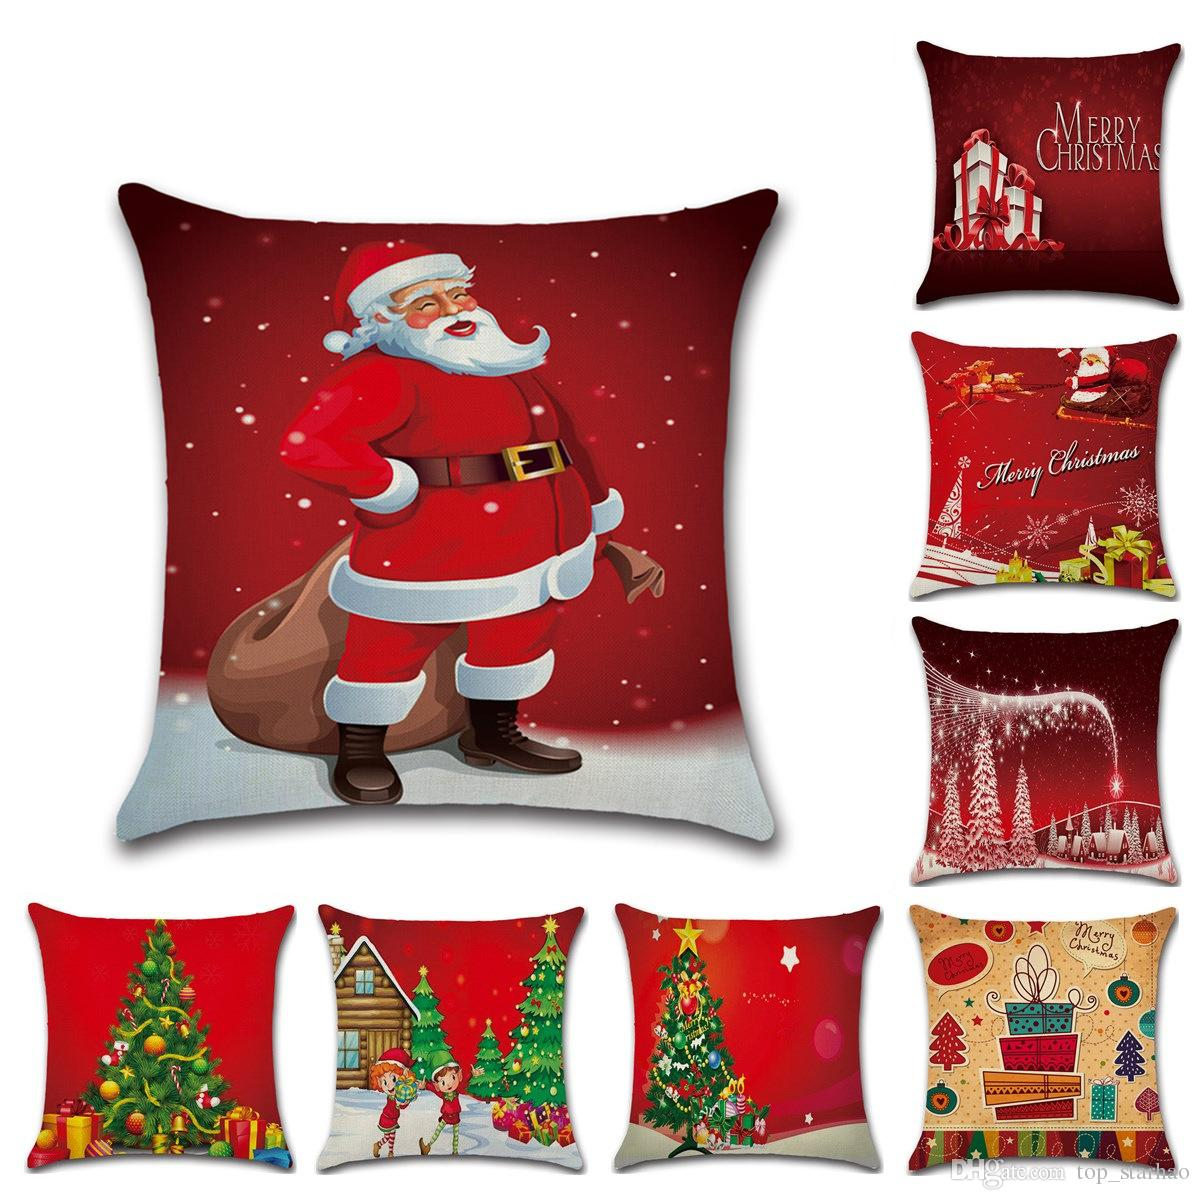 christmas pillow case xmas linen pillow cover reindeer elk throw pillow cushion covers tree decorative pillows covers 15 designs xl 400 pillow case pattern